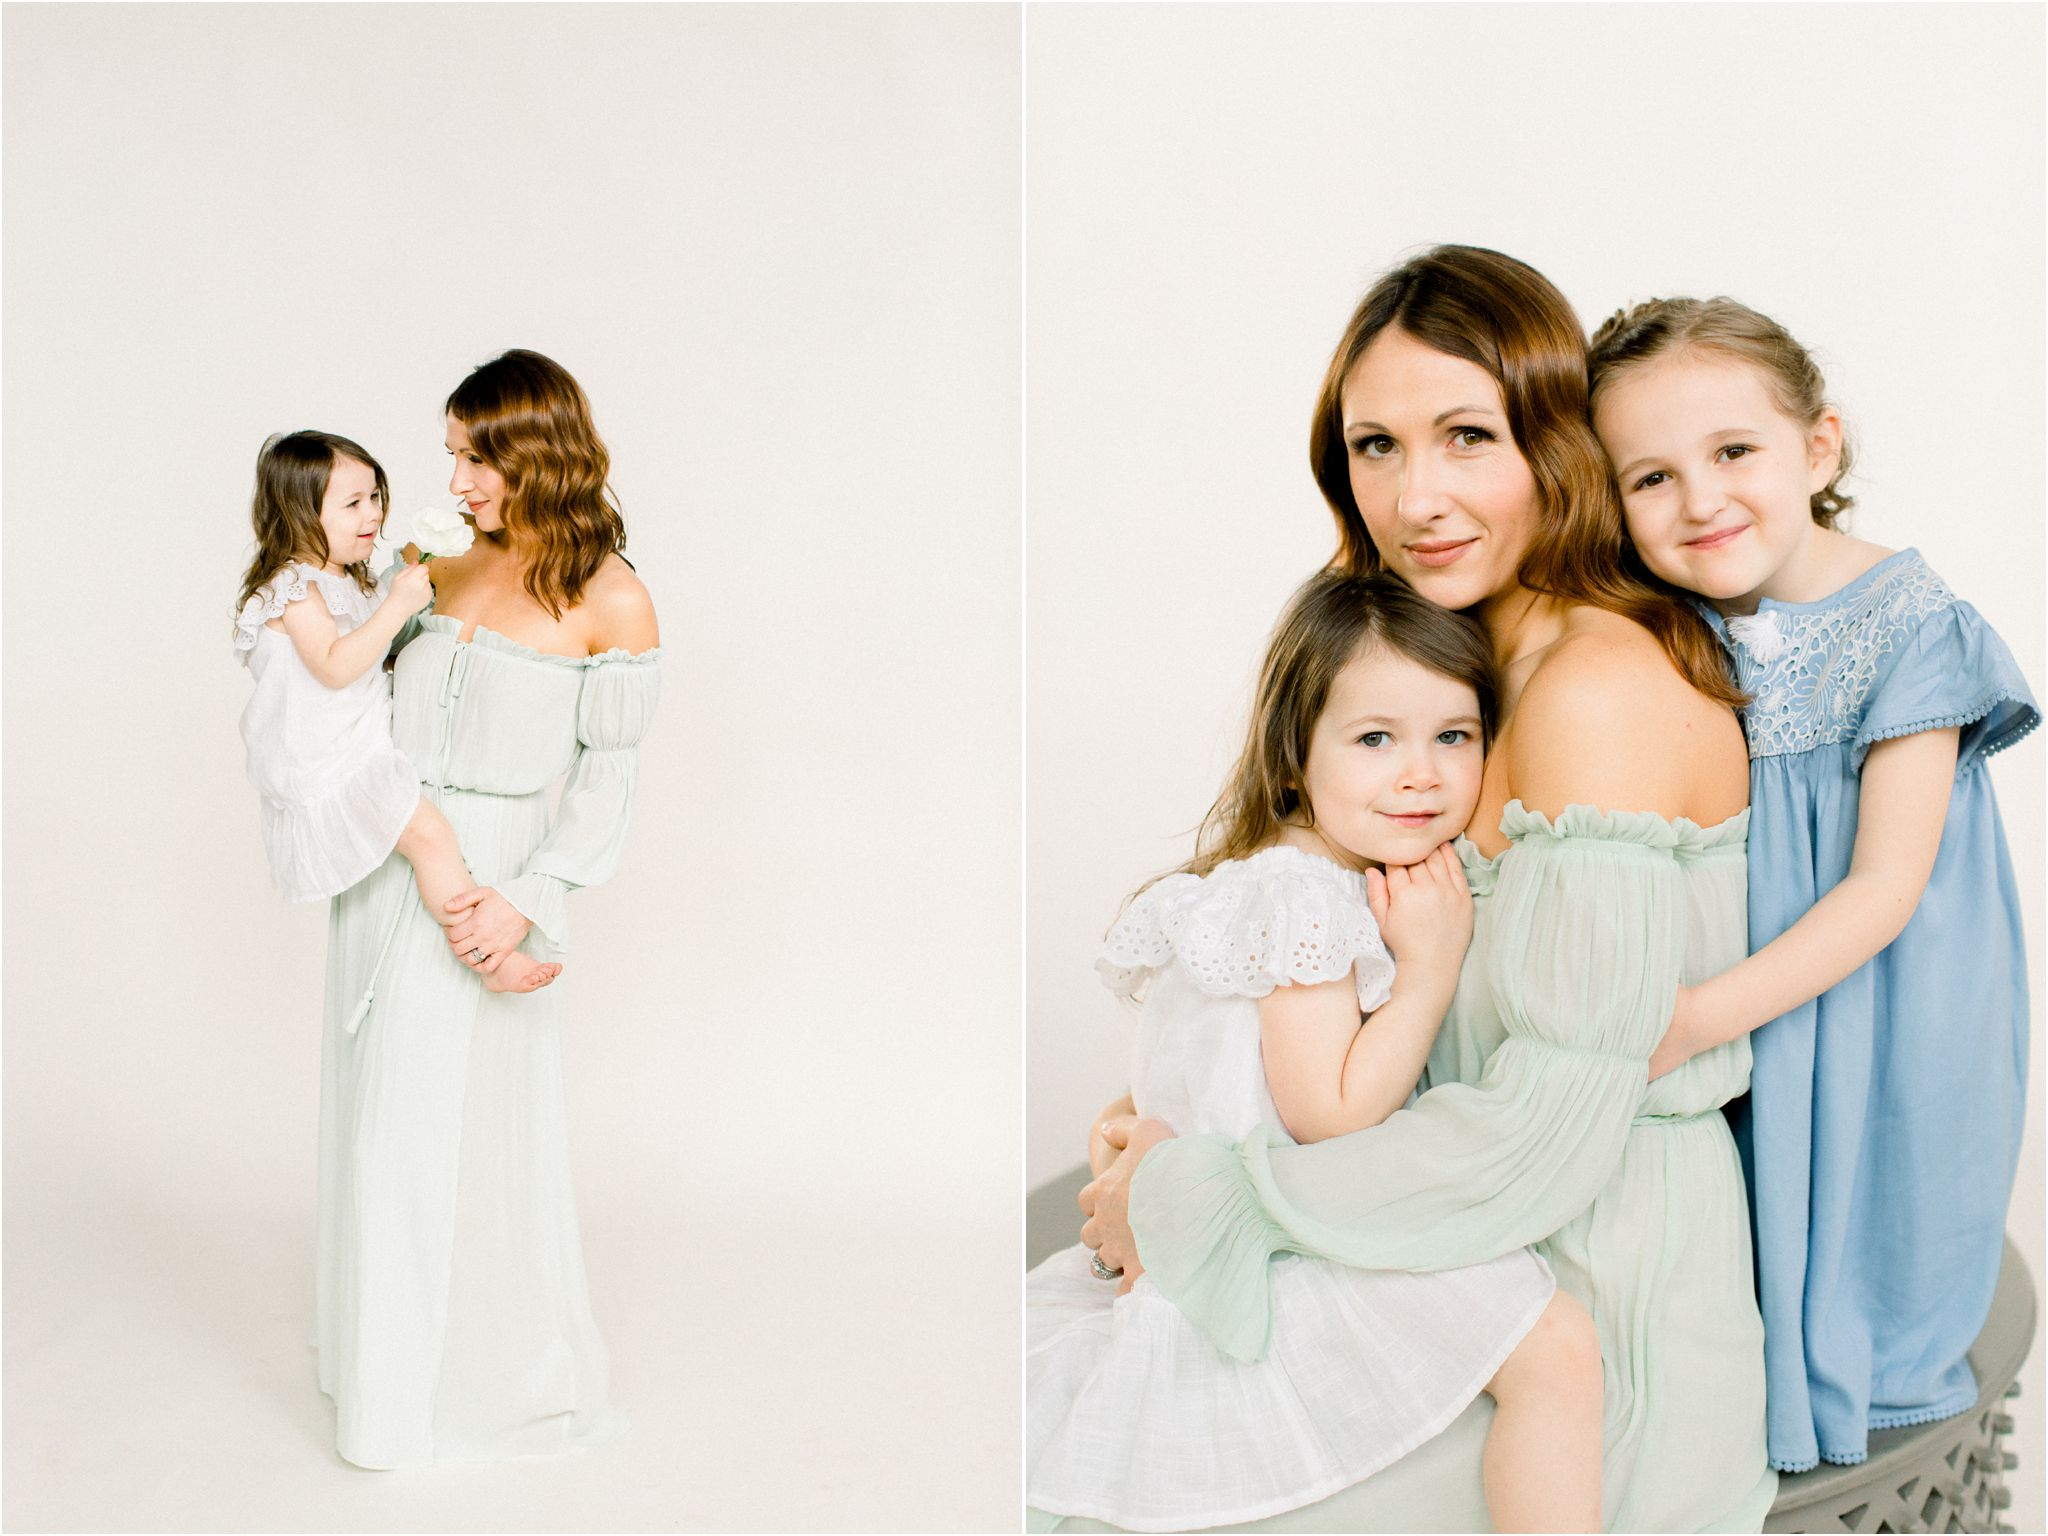 190413_MOTHERHOOD_GREGORY_EDITS_00019.jpg